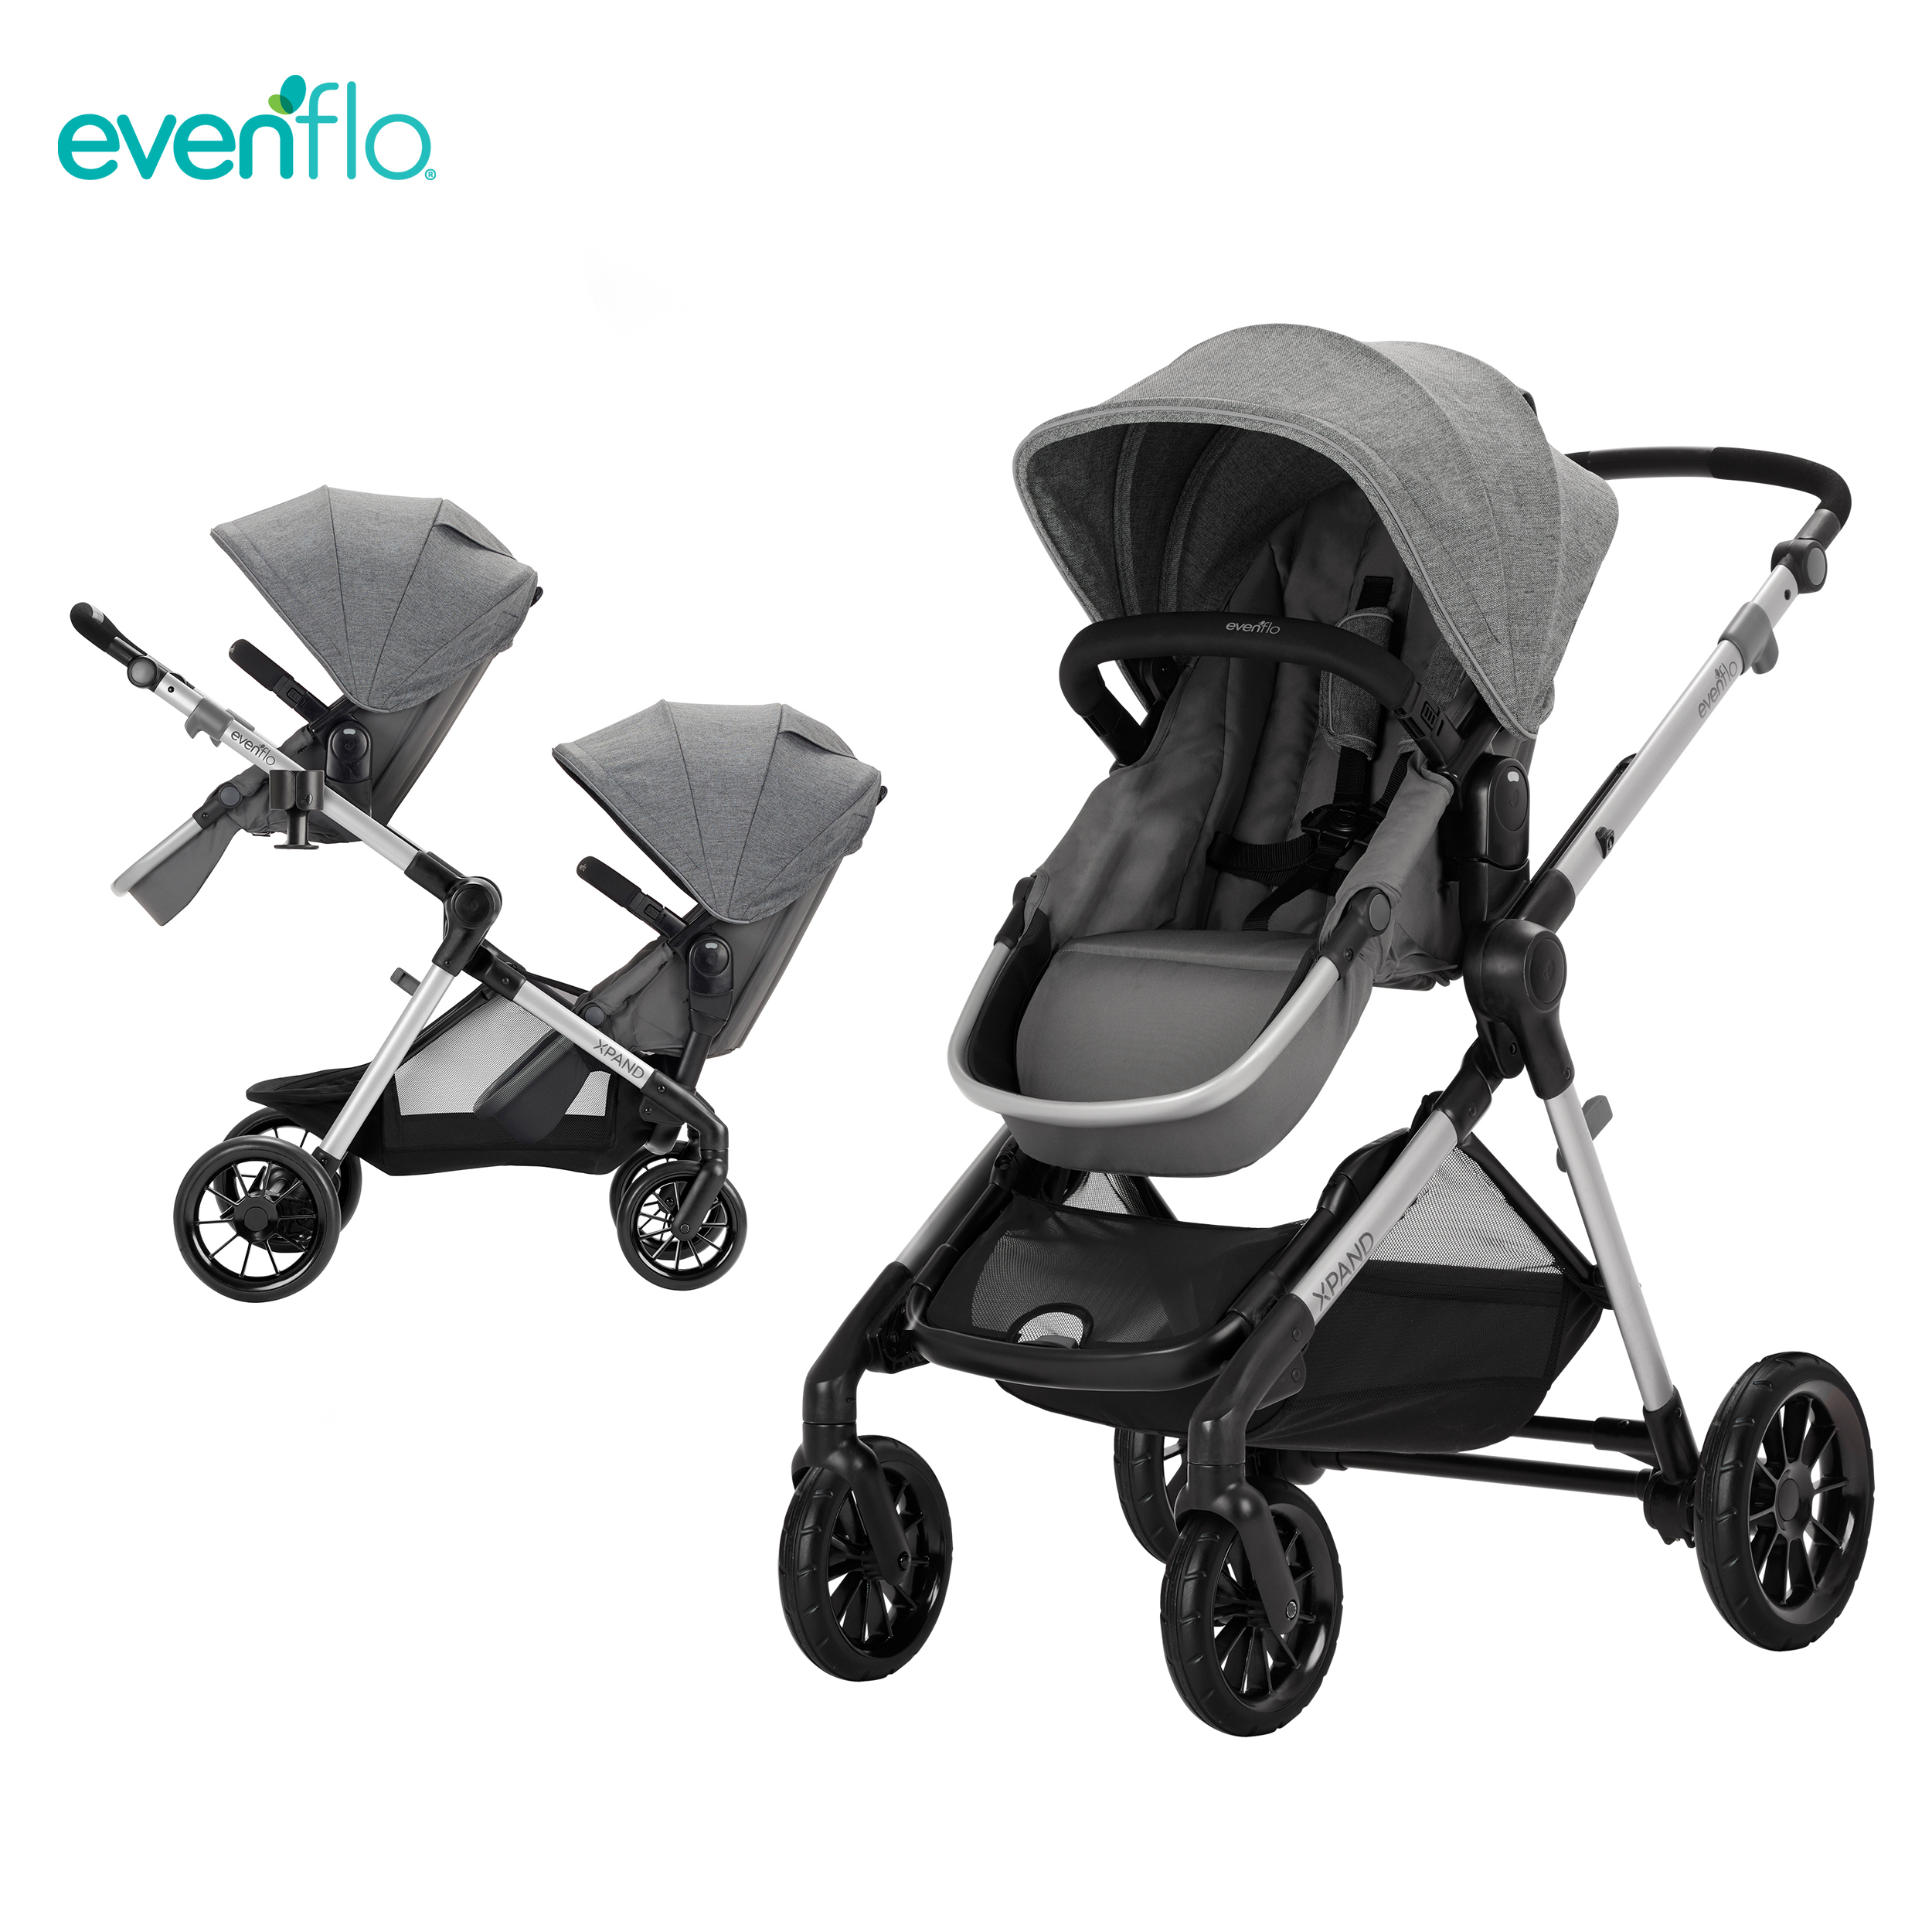 Evenflo Pivot Xpand Modular Travel System With Double Seats Baby Stroller image